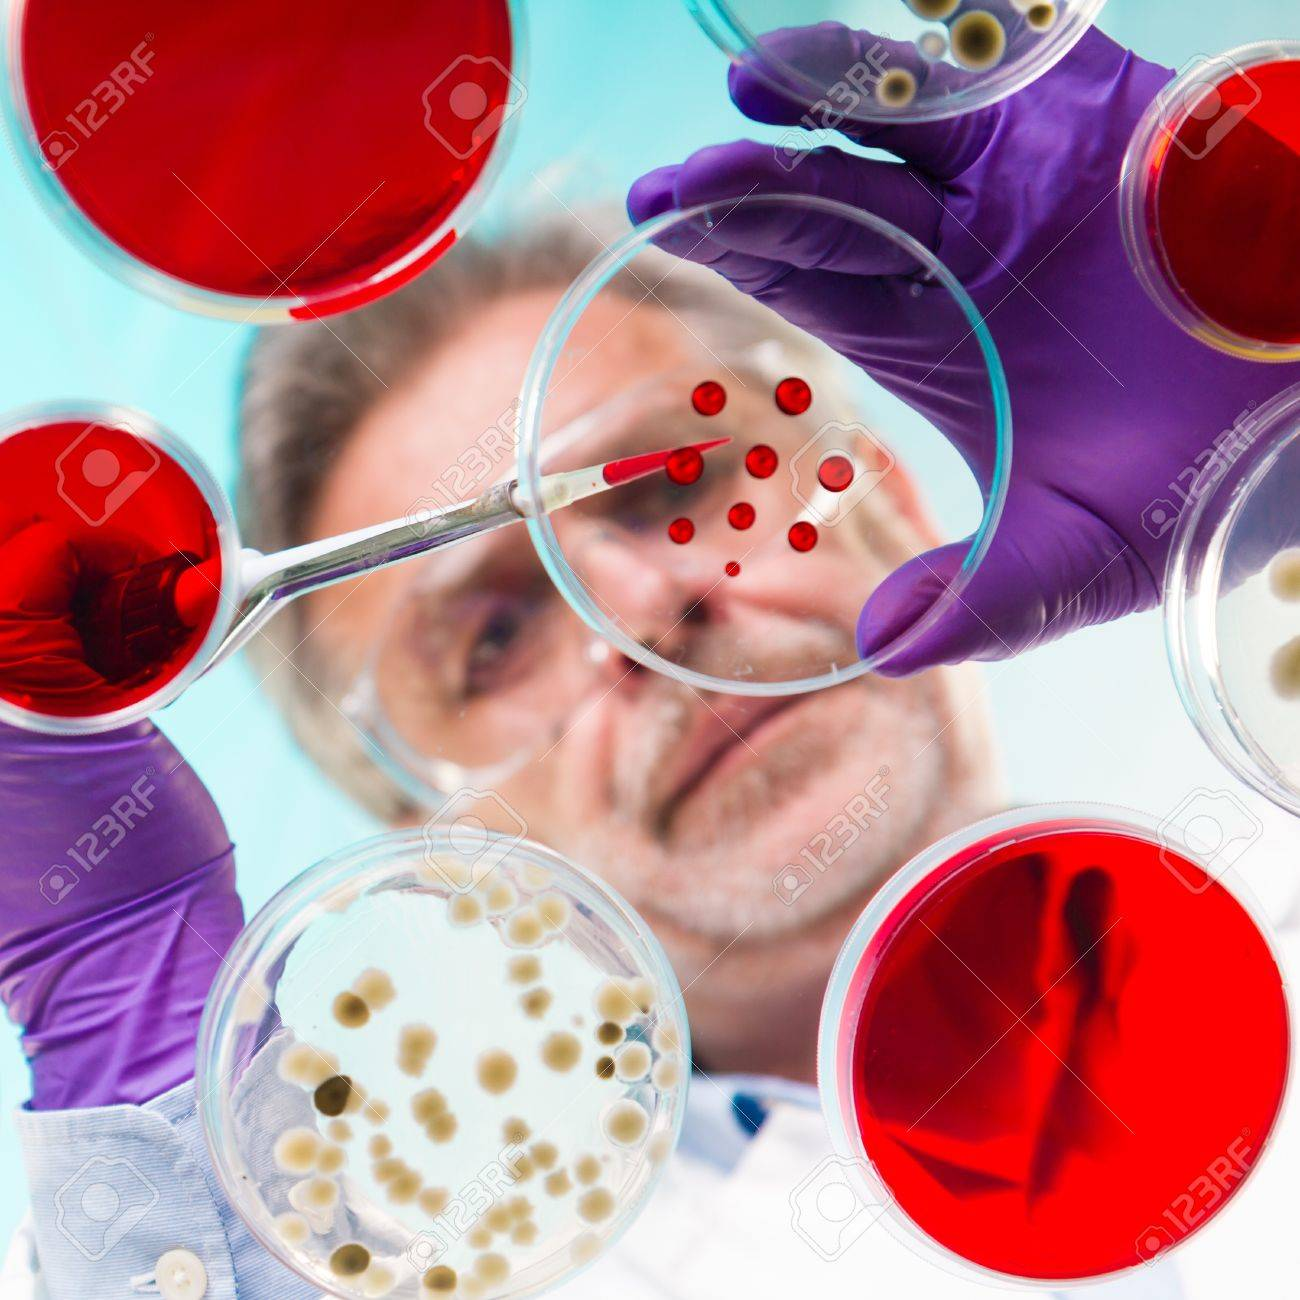 Focused senior life science professional pipetting solution into the pettri dish.  Lens focus on the pipette. Stock Photo - 18153180